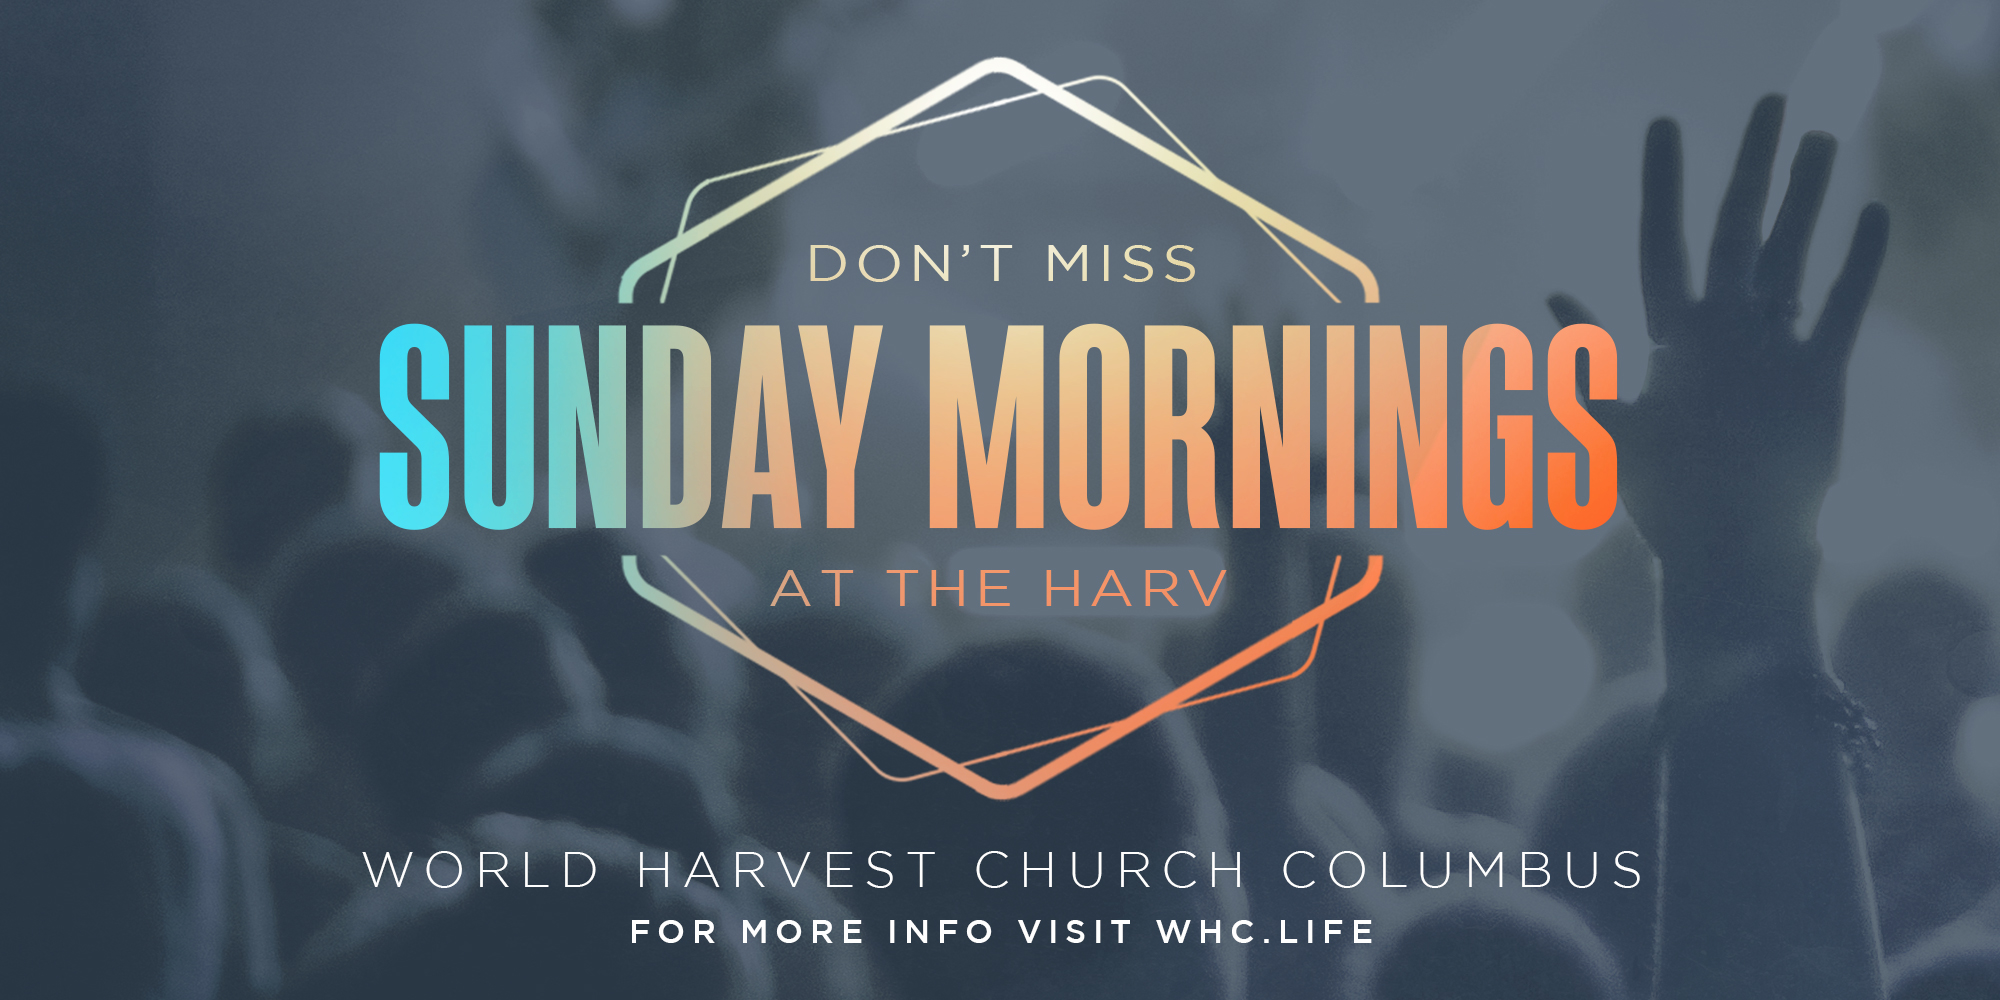 Dont Miss Sunday Mornings at the Harv World Harvest Church Columbus for More Info VIsit WHC.LIFE